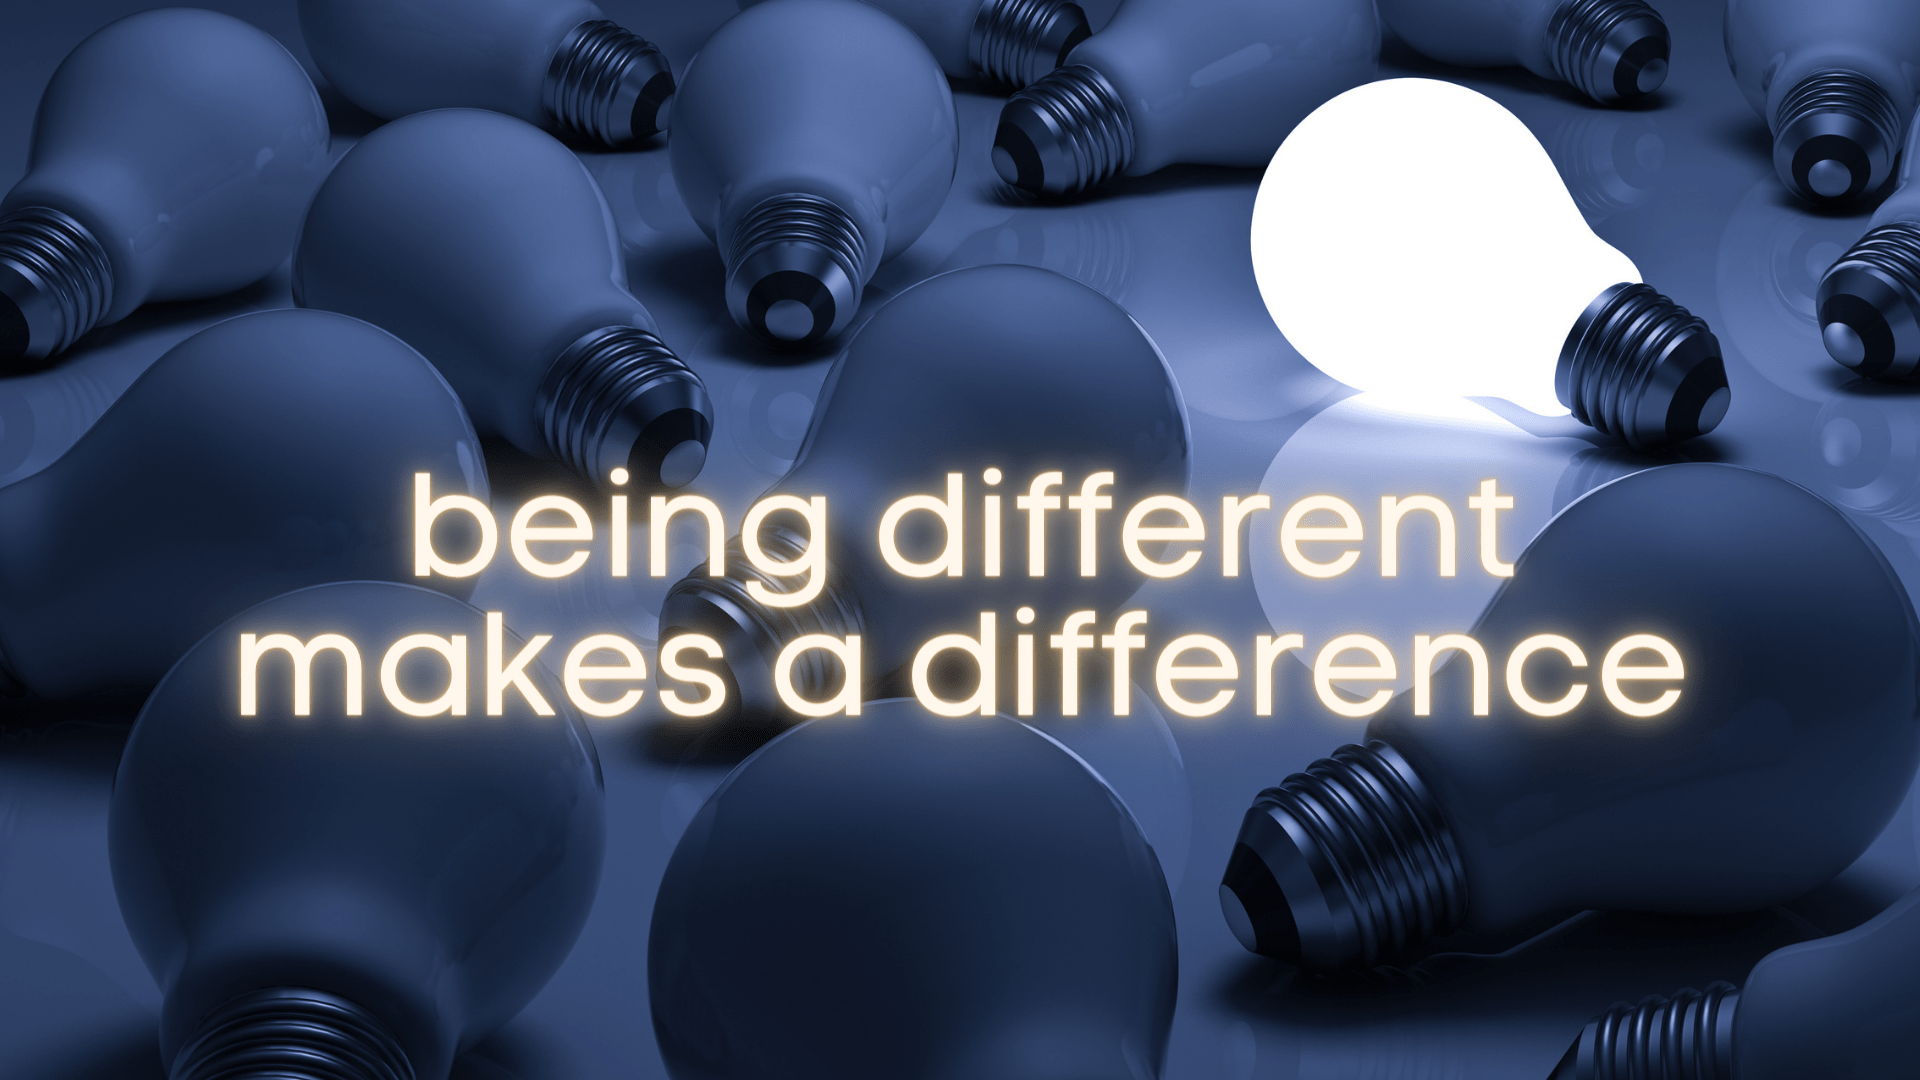 Being different makes a difference